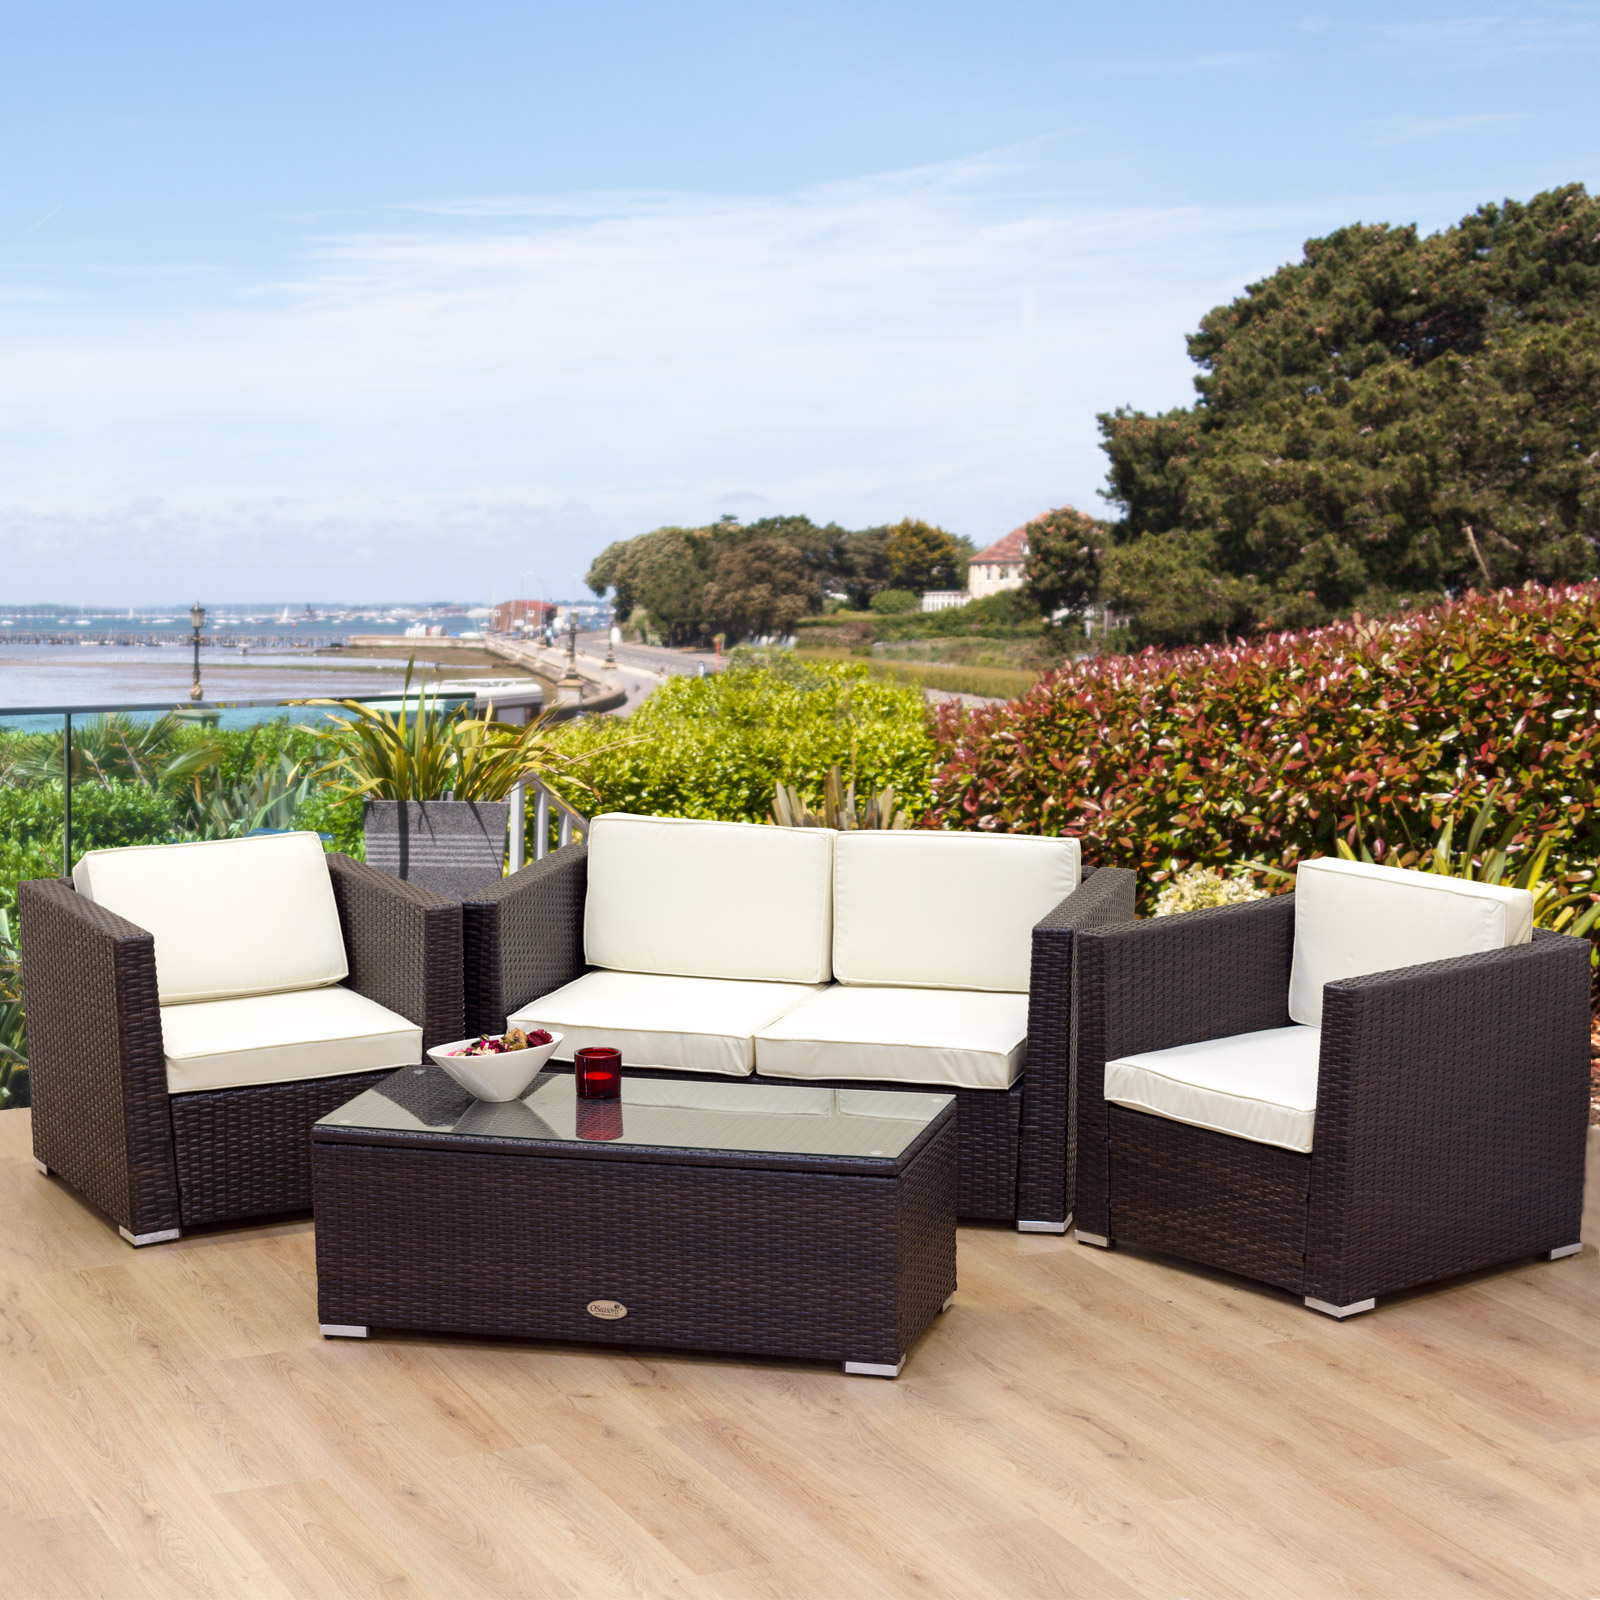 Awesome rattan garden furniture hgnv com for Outdoor furniture wicker